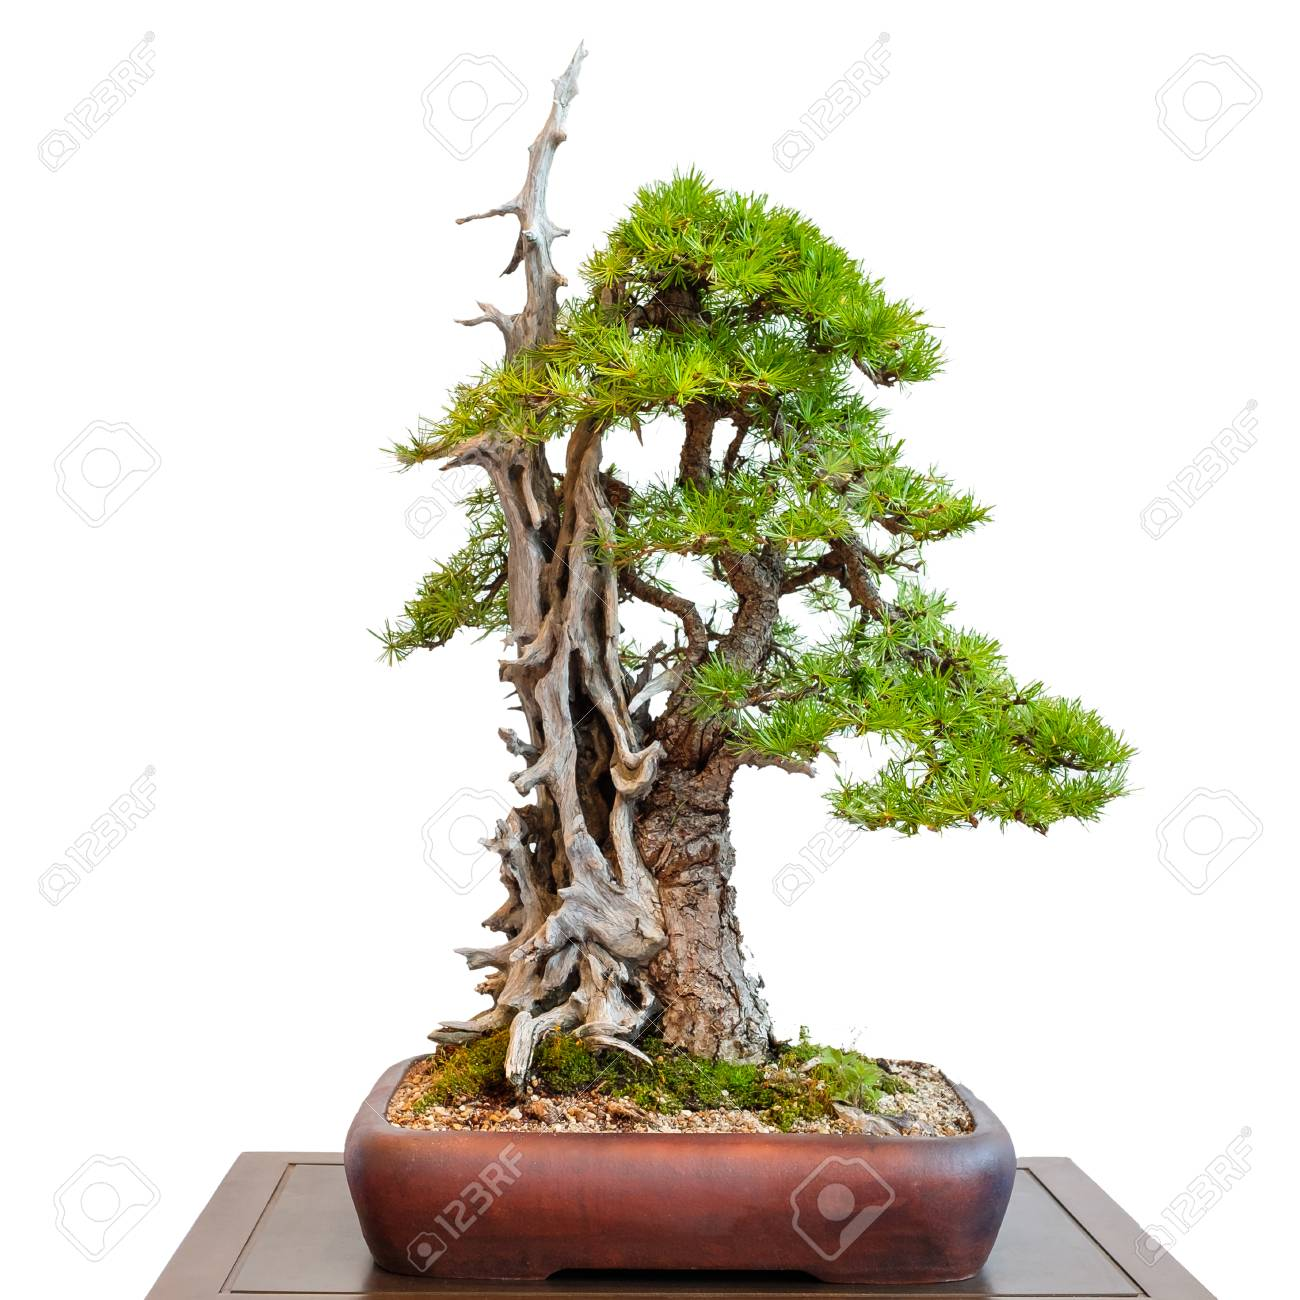 White Isolated Old Conifer Larch With Dead Wood As Bonsai Tree Stock Photo Picture And Royalty Free Image Image 89729297